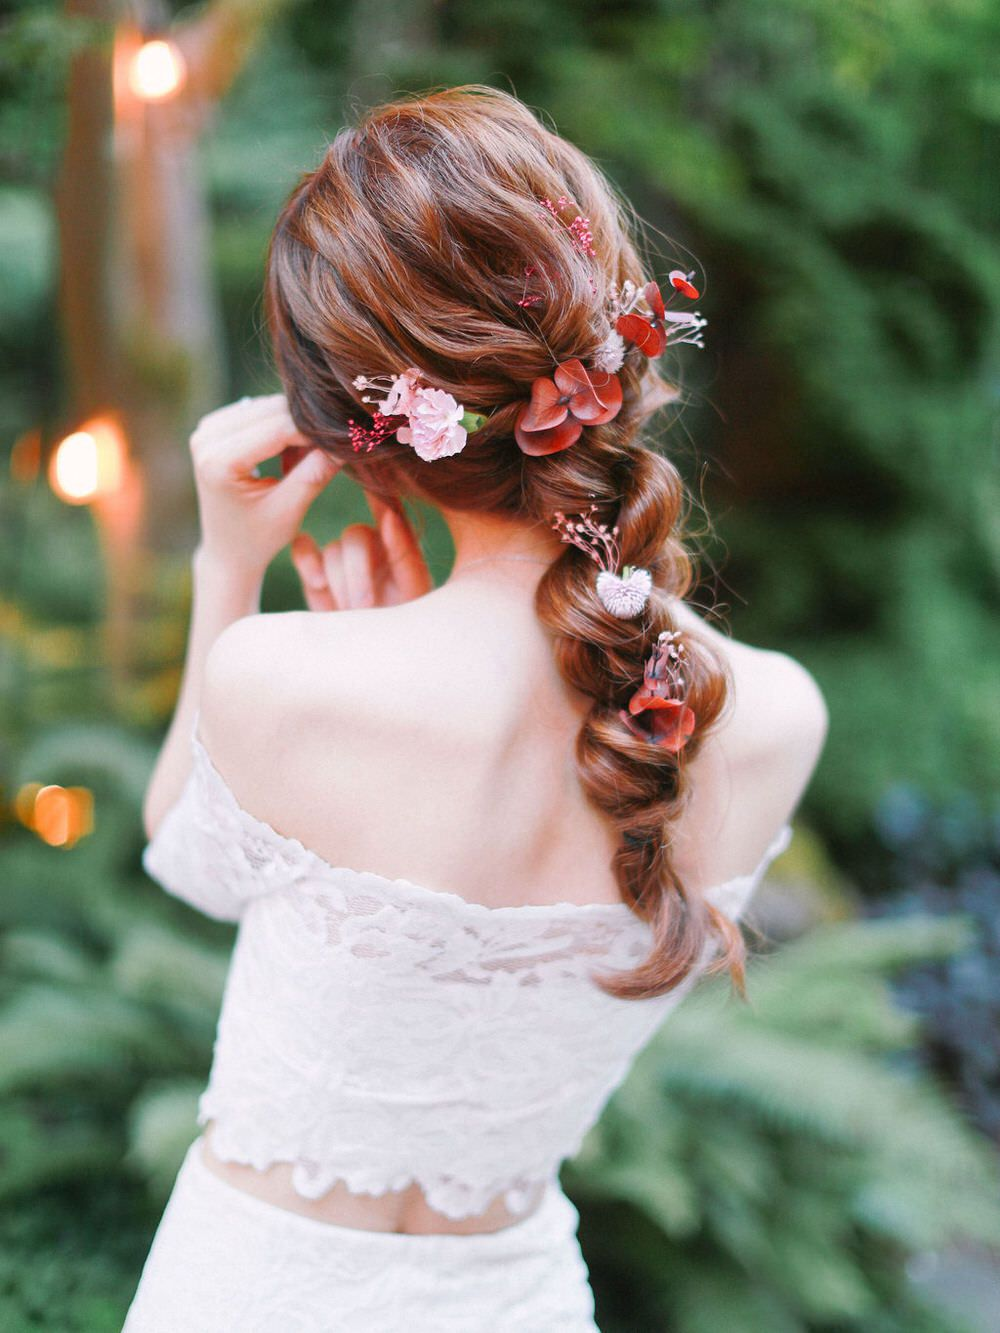 Floral-Studded Rope Braid